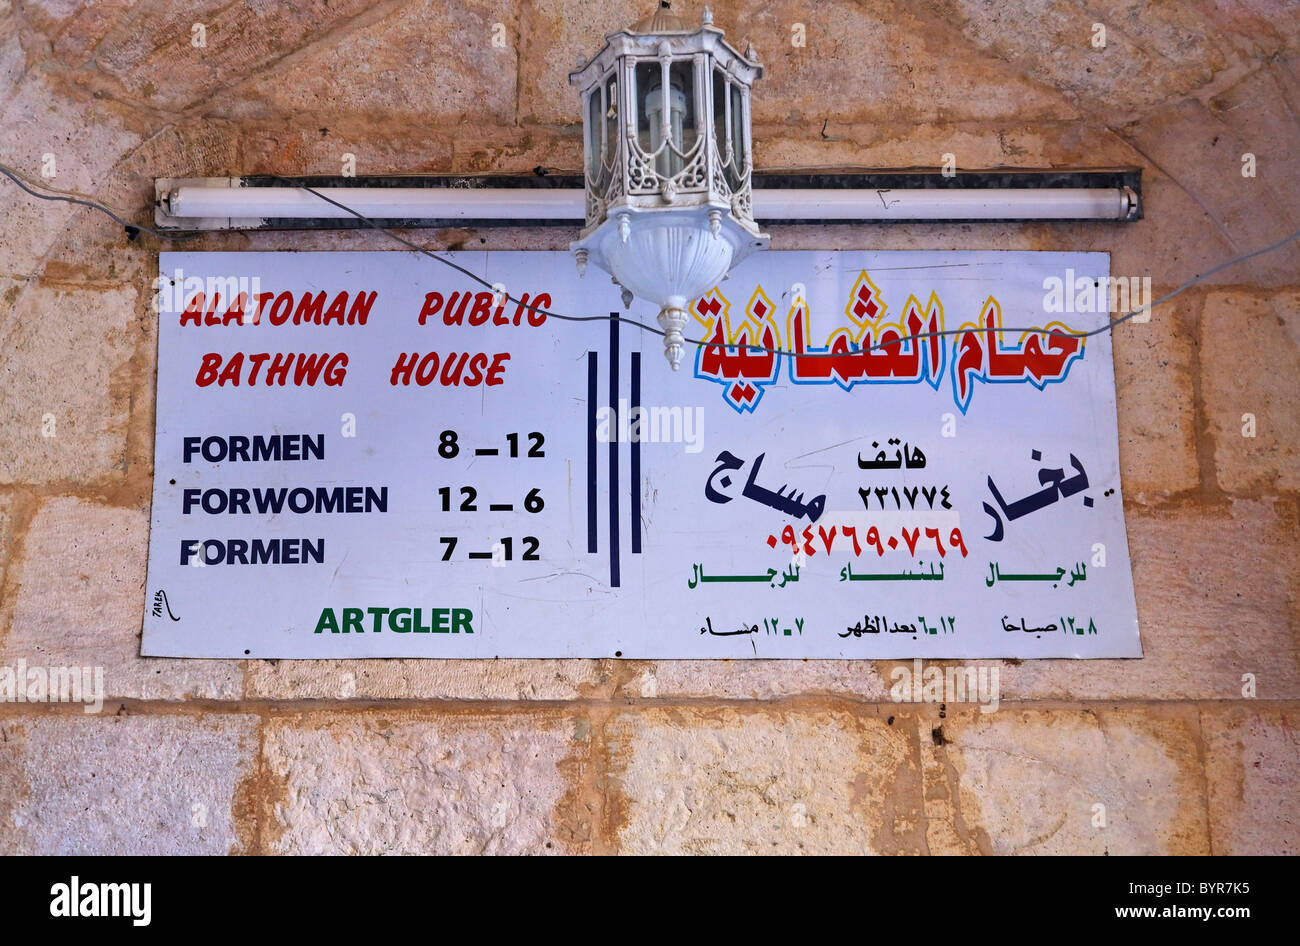 Notice showing opening times for public baths, Hama, Syria - Stock Image